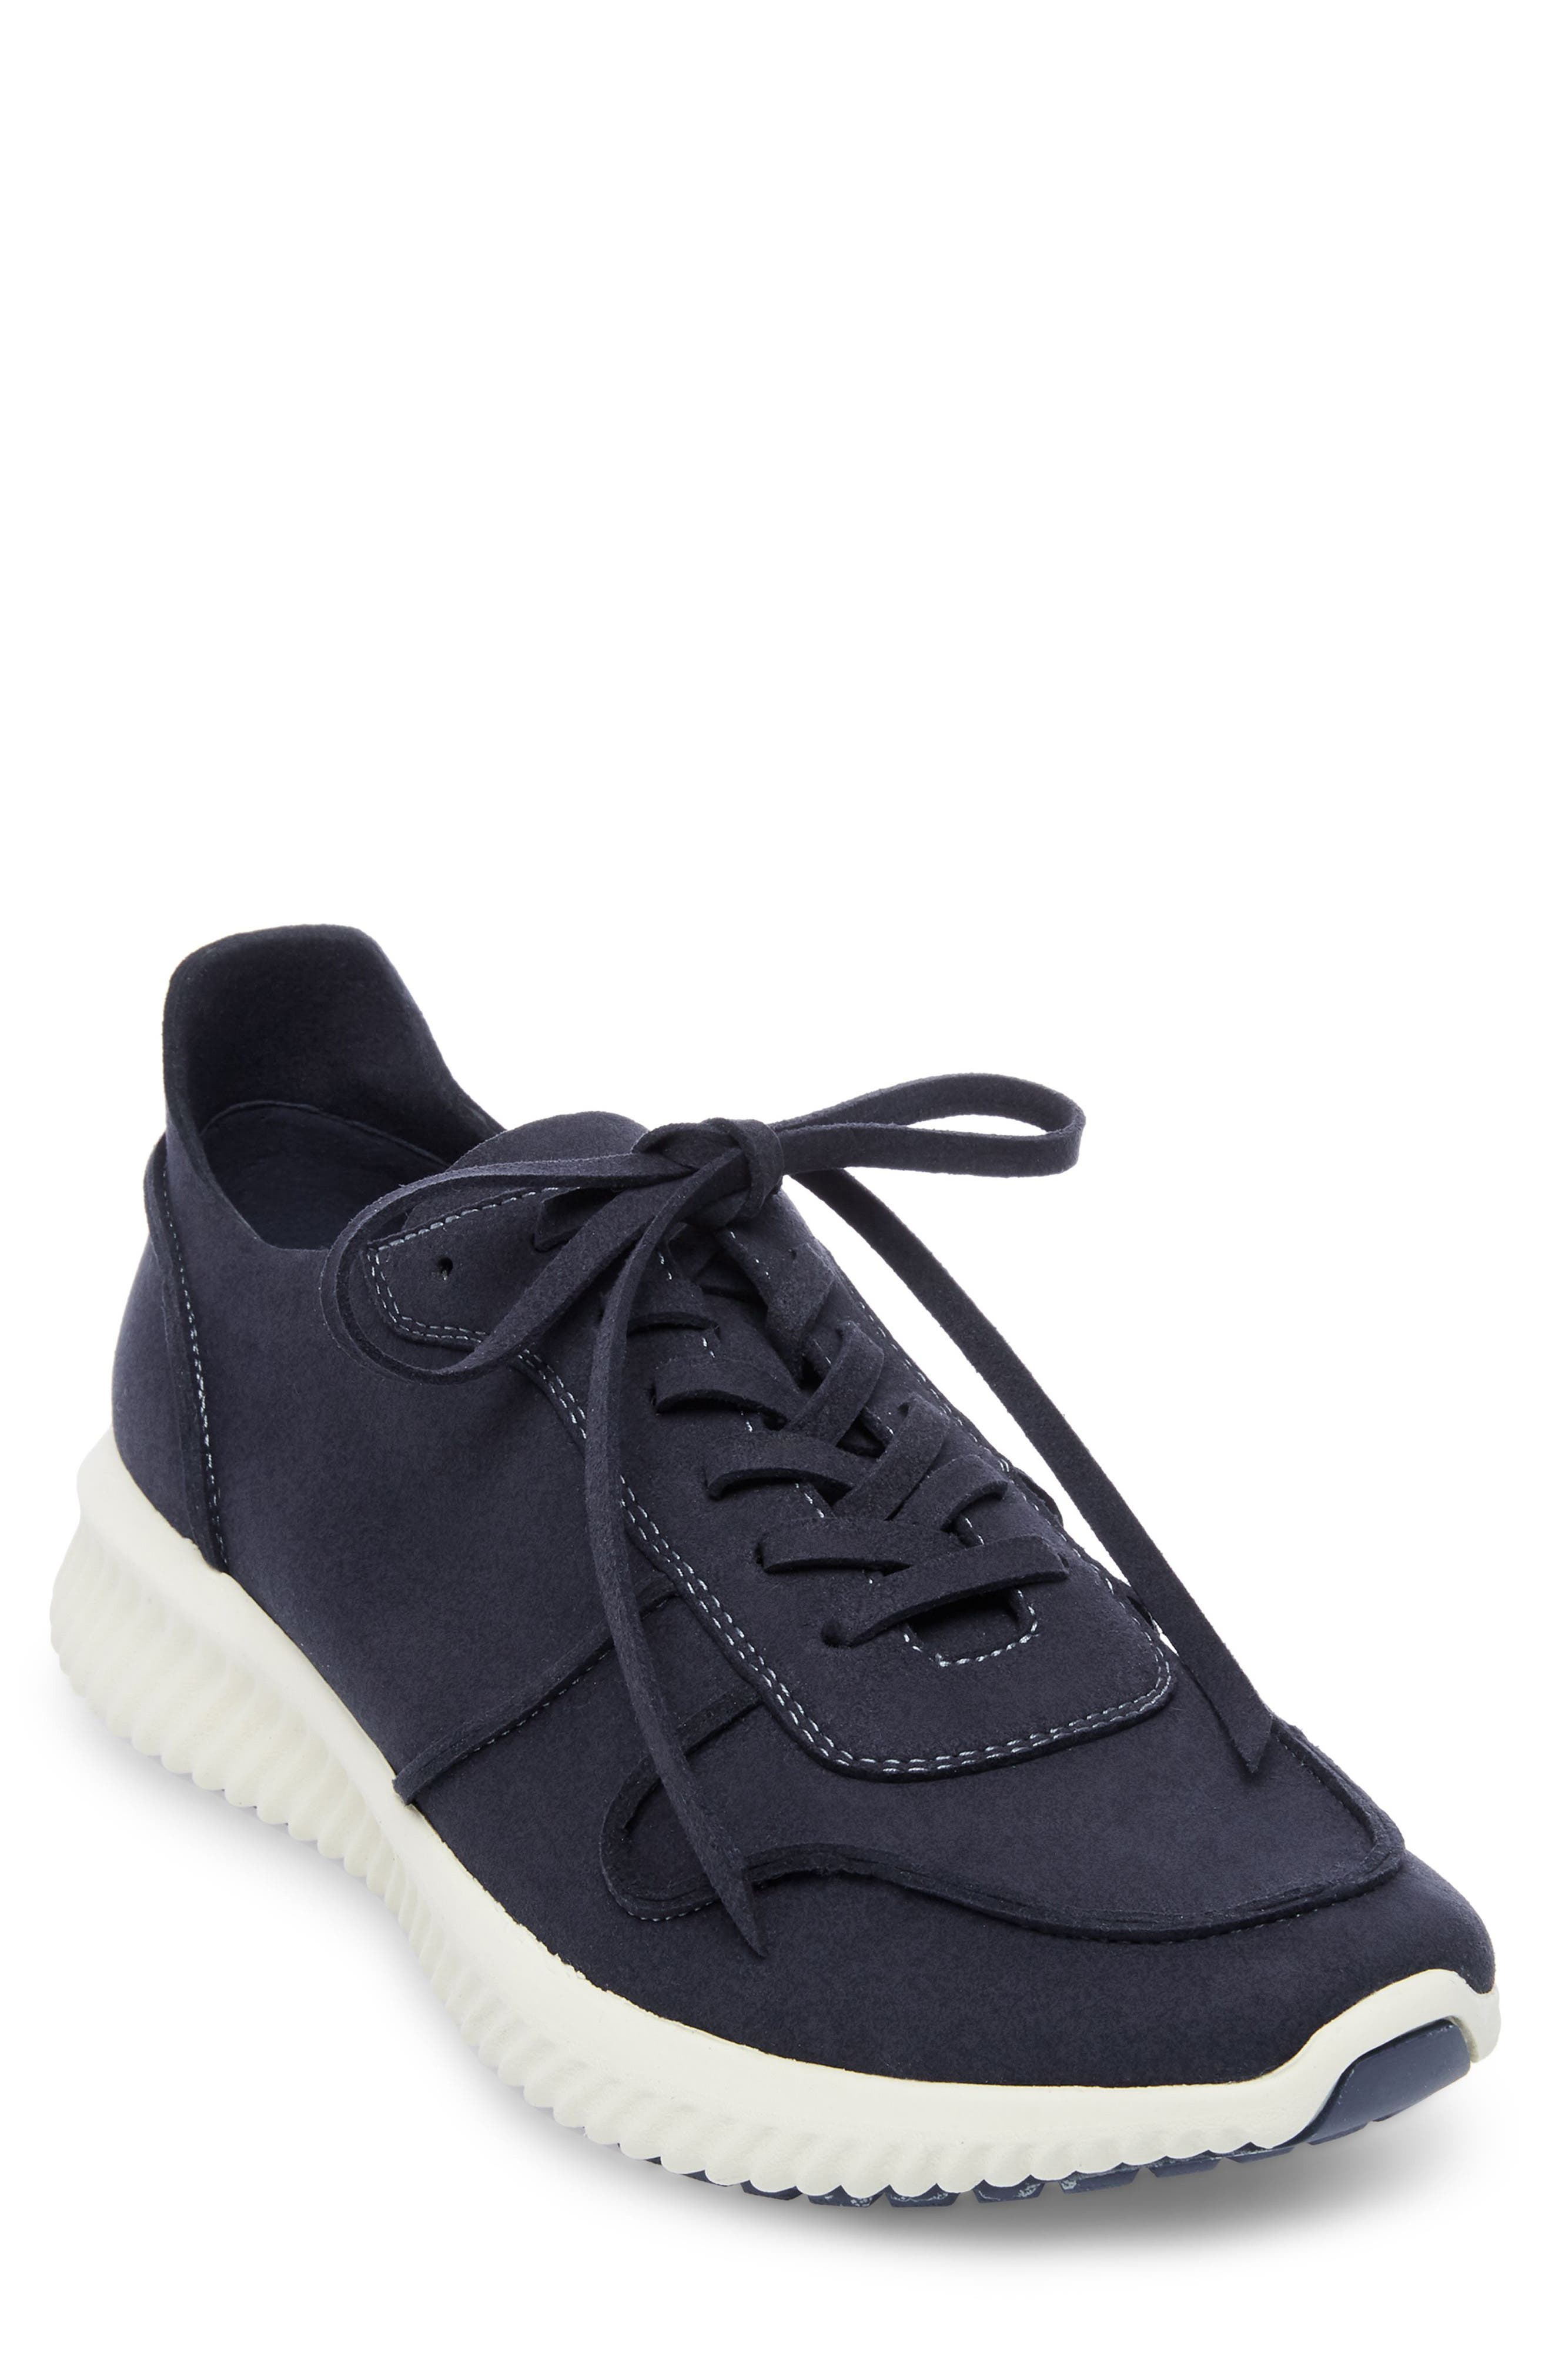 Rolf Low Top Sneaker,                             Main thumbnail 1, color,                             Navy Leather